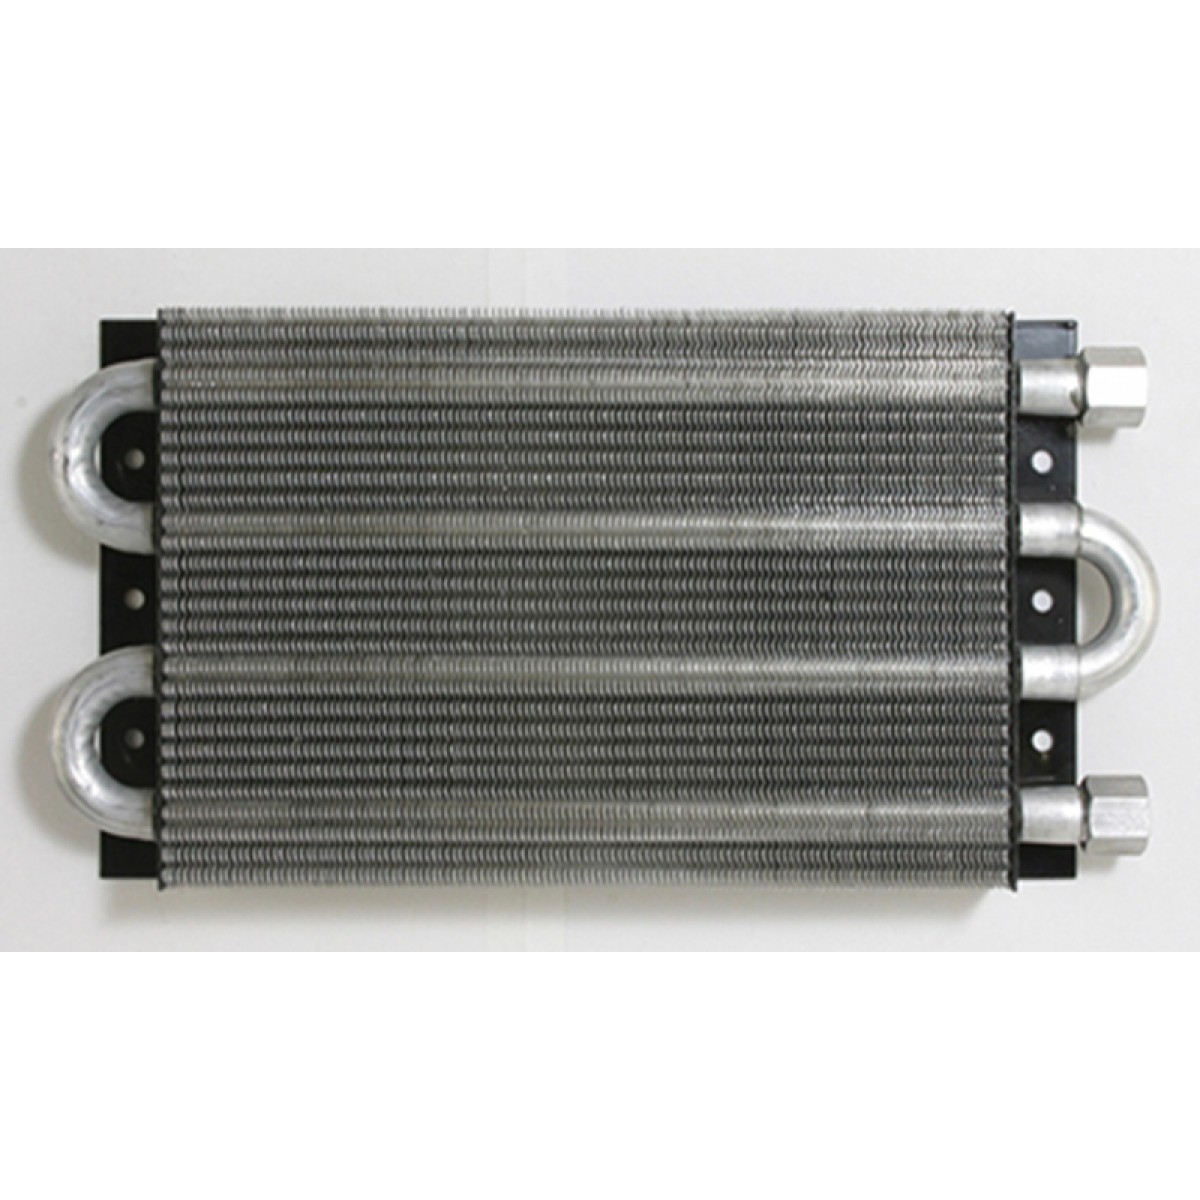 Auto Mobile Engine Oil Cooler : Engine oil cooler coil only pass quot fpt